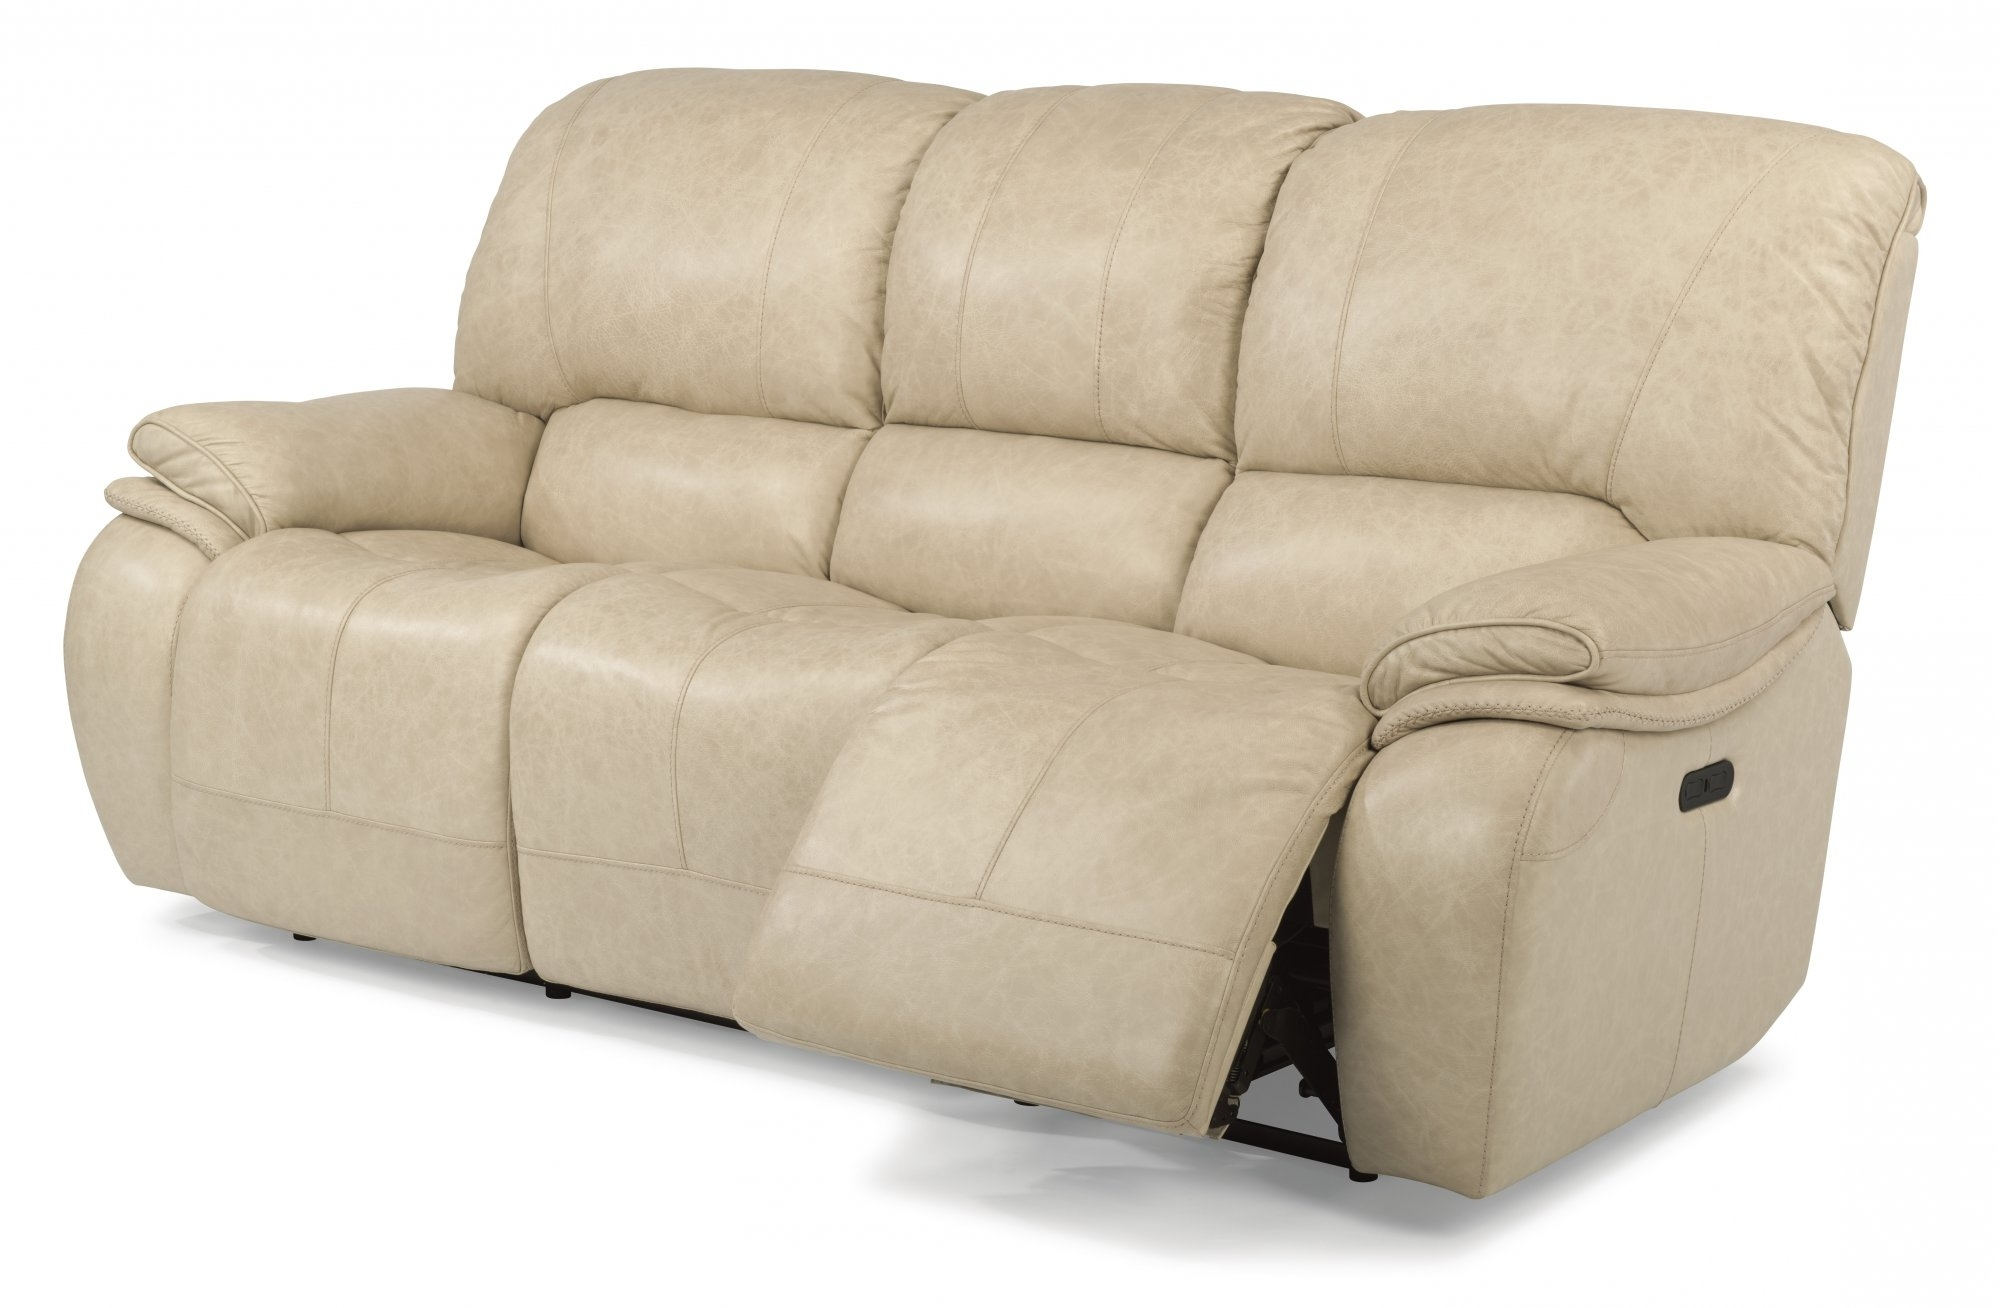 Most Recently Released Electric Recliner Sofa – Home Design Ideas And Pictures Regarding Economax Sectional Sofas (View 15 of 20)